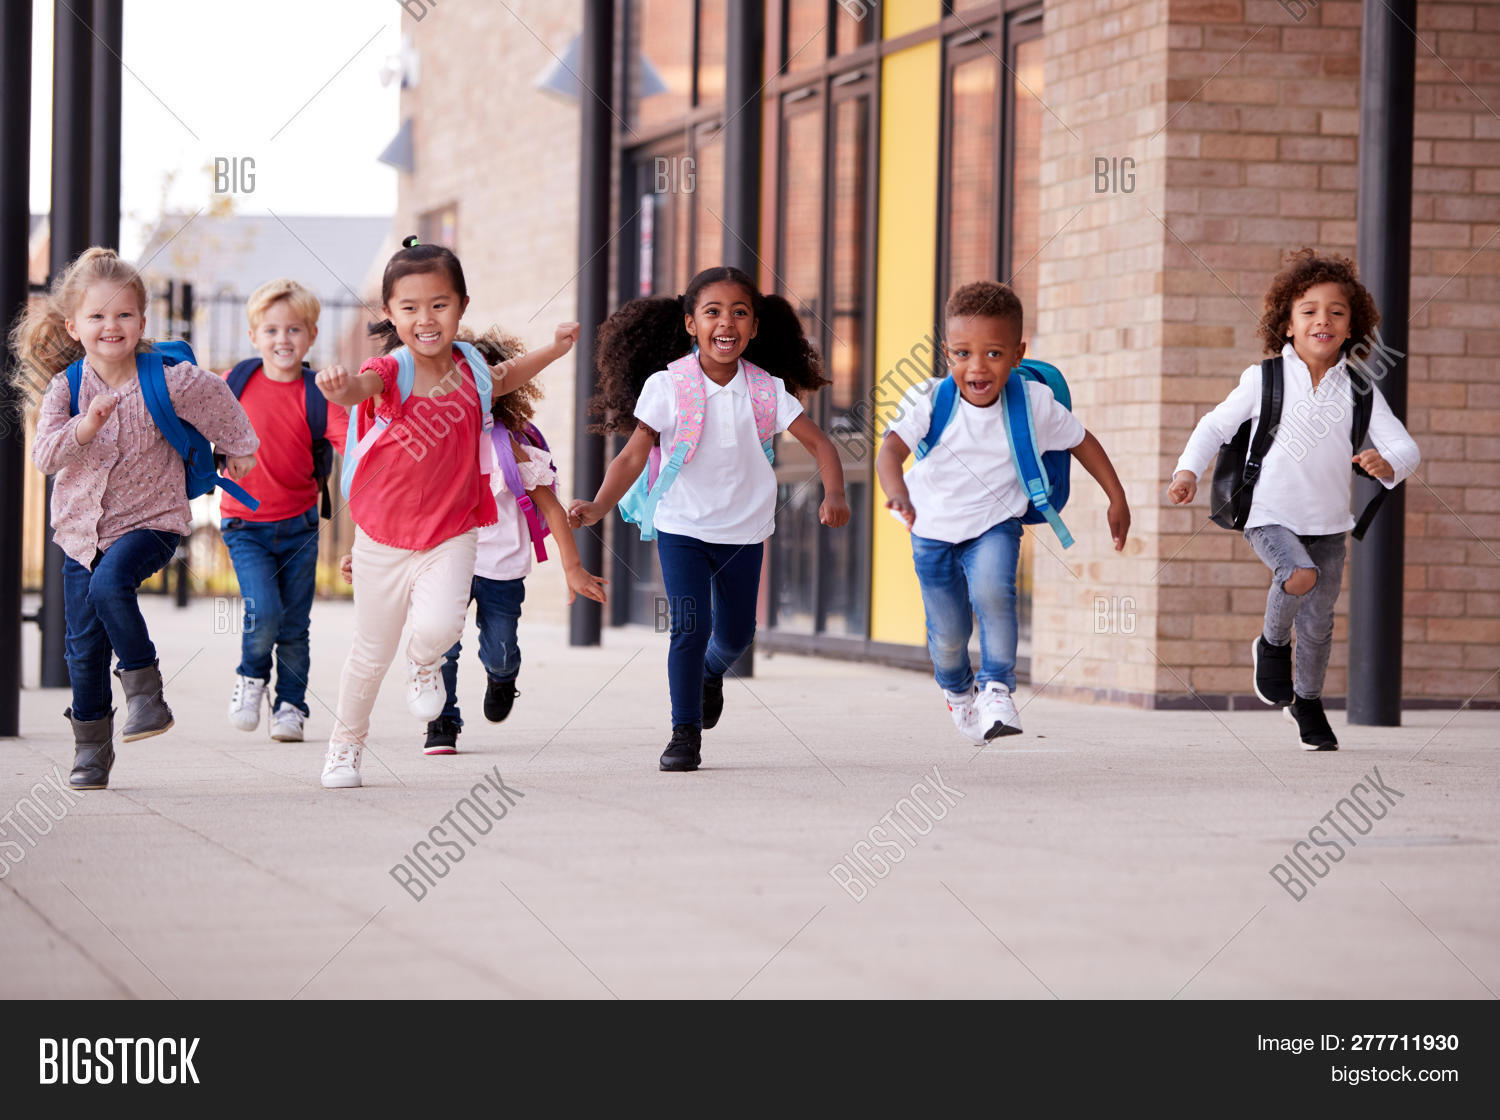 backpack,bonding,break time,building exterior,childhood,children,classmates,confident,copy space,day,energy,excited,friends,front view,full length,girls,happy,home time,horizontal,indoors,infant school,kids,kindergarten,late,looking ahead,low angle,medium group of people,modern architecture,multi-ethnic group,nursery school,pre-teens,pupils,recess,registration,rucksack,running,school kids,schoolbag,schoolboys,schoolchildren,schoolgirls,smiling,togetherness,urgency,walkway,youth